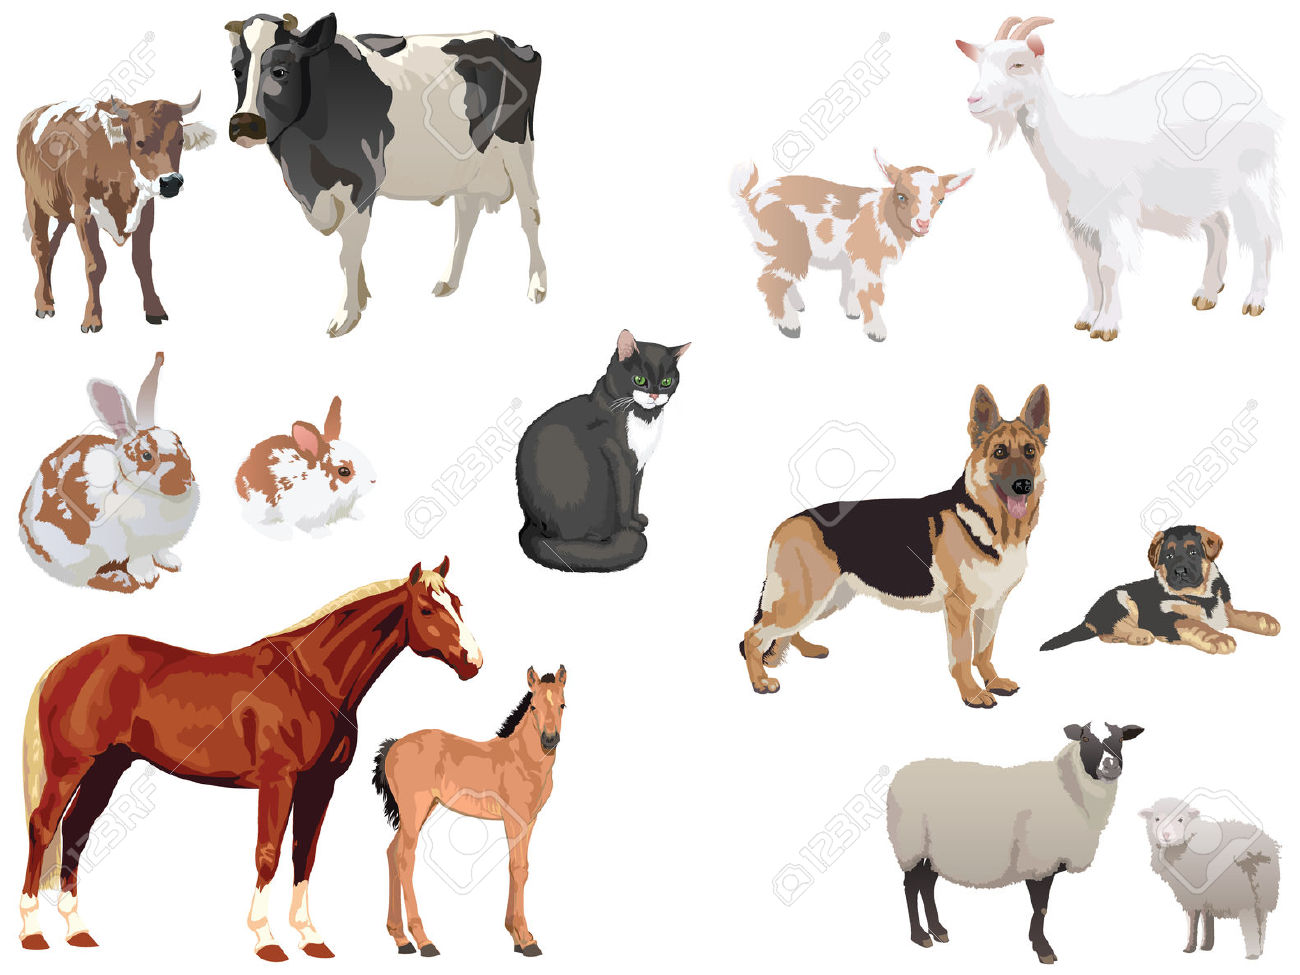 Clipart Set Of Domestic Animals With Cubs Royalty Free Cliparts.